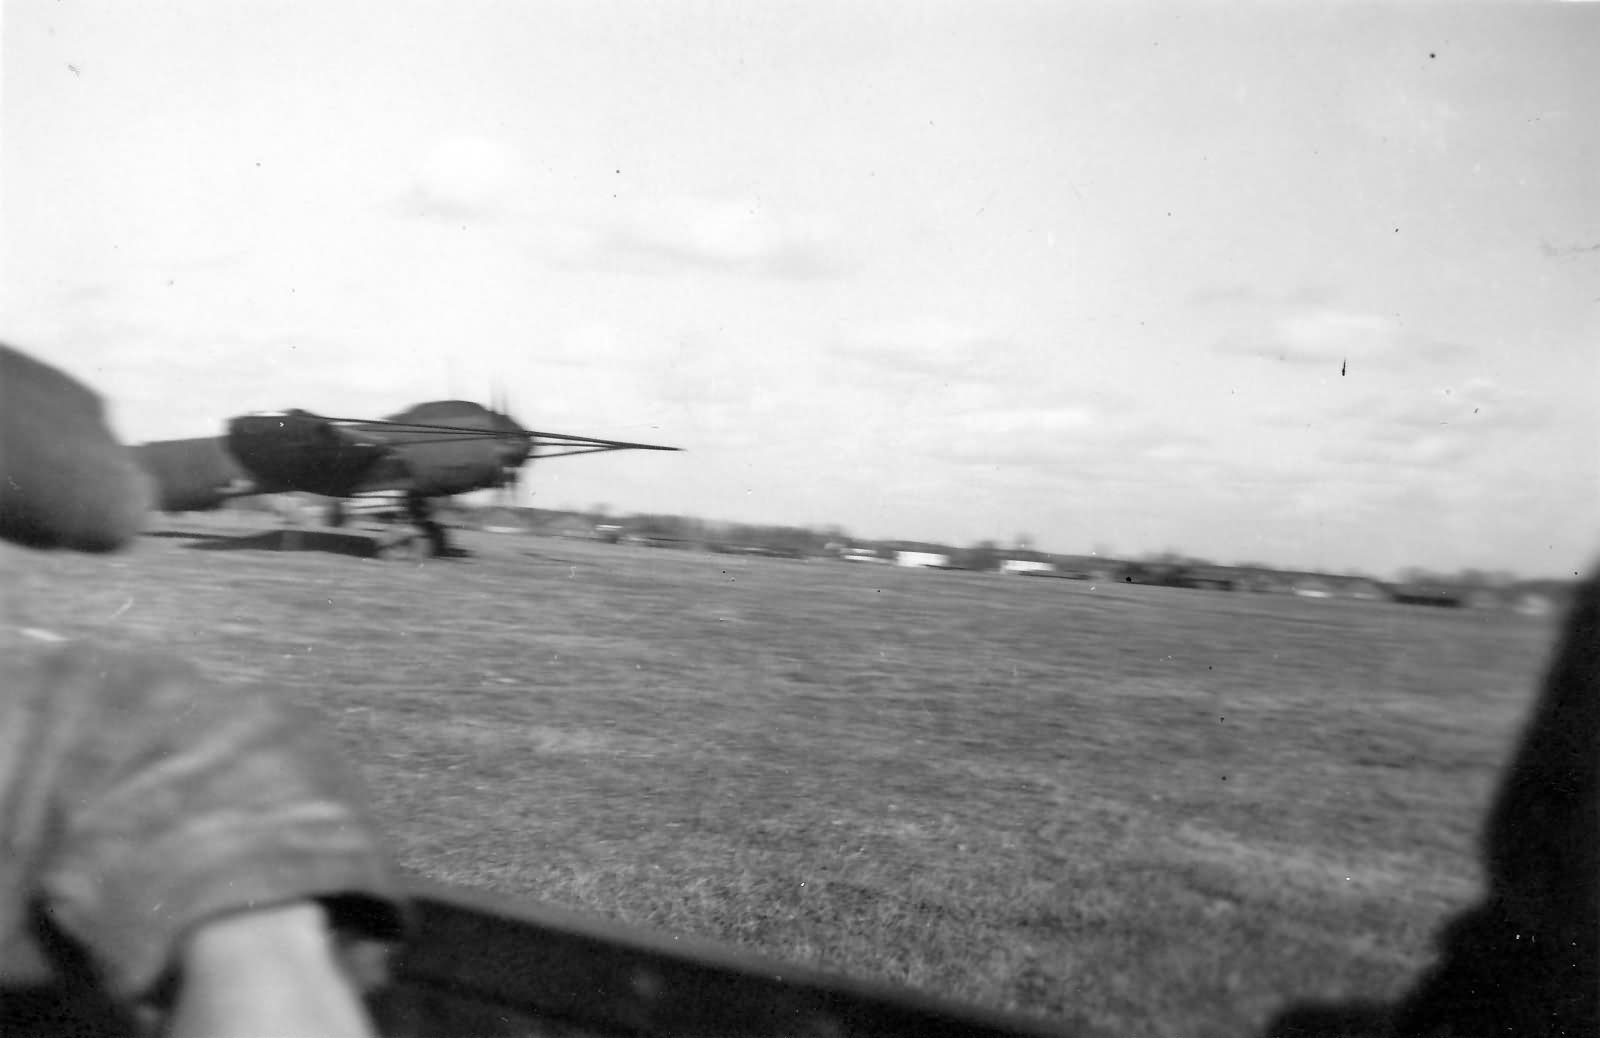 Junkers Ju88 A-6, bomber with large cable-cutting device to counter barrage balloons.